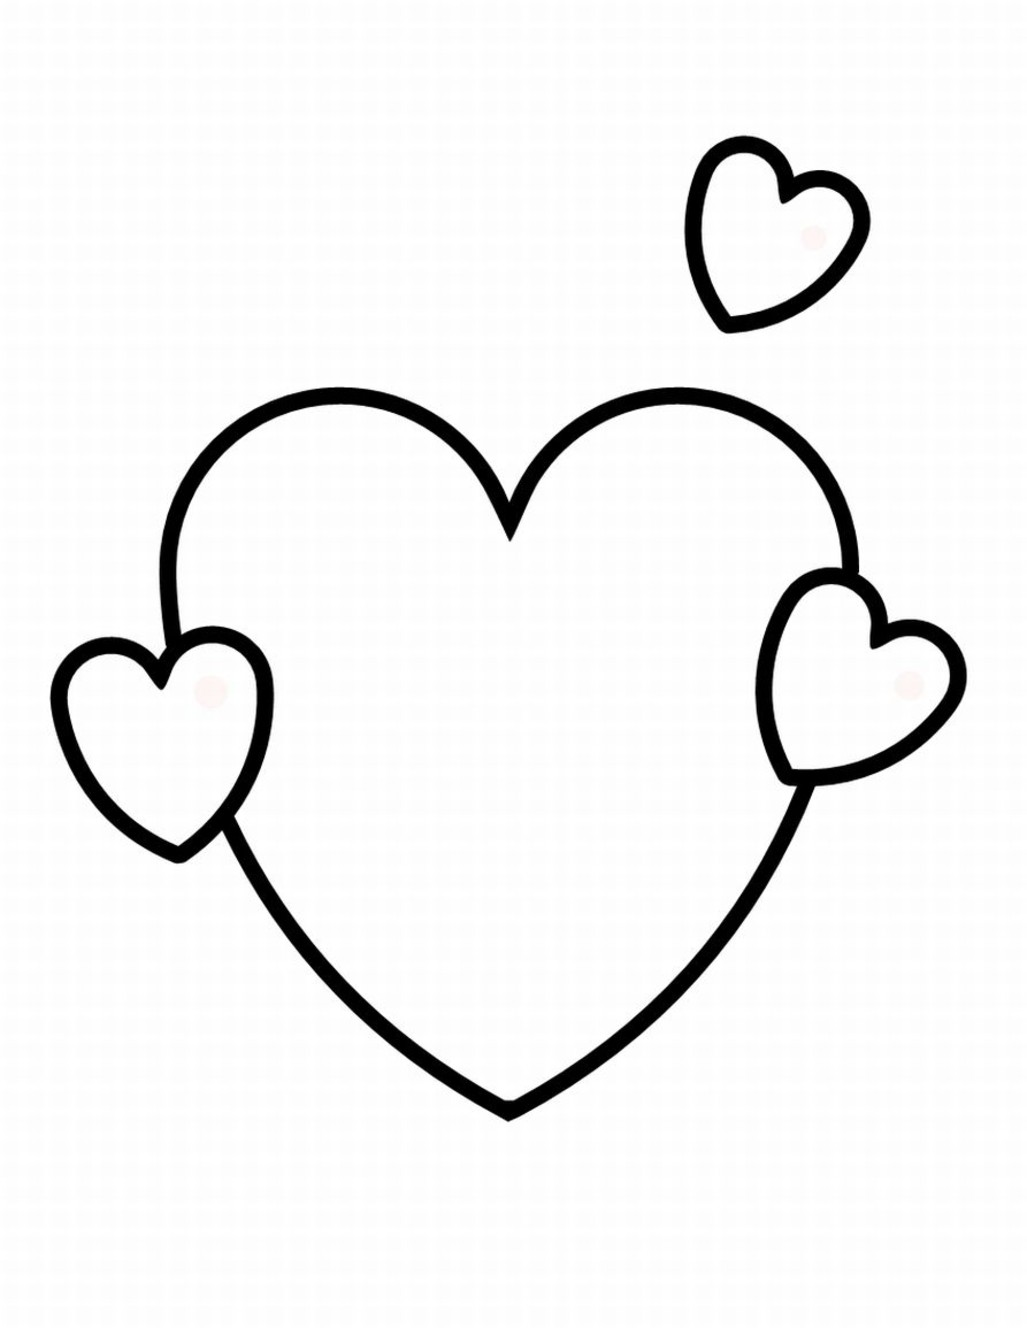 free printable heart coloring pages for kids valentine heart coloring pages best coloring pages for kids free pages for coloring heart printable kids